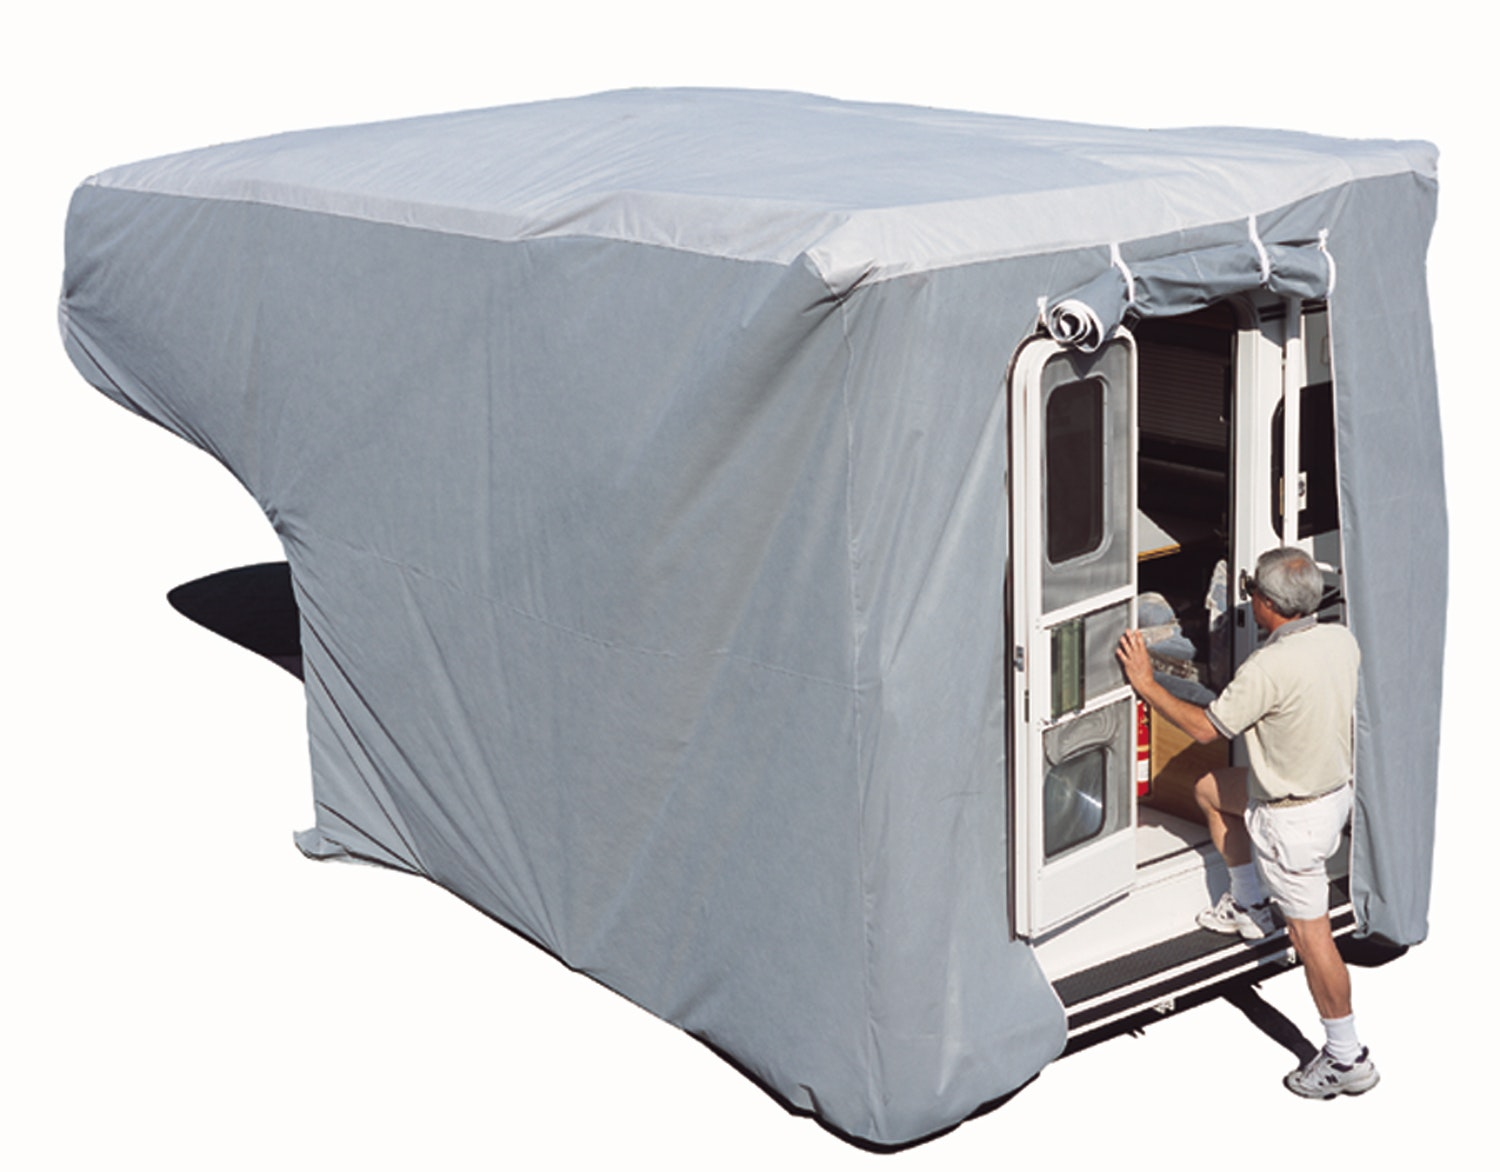 Adco Aquashed 8 10 Slide In Truck Camper Rv Cover